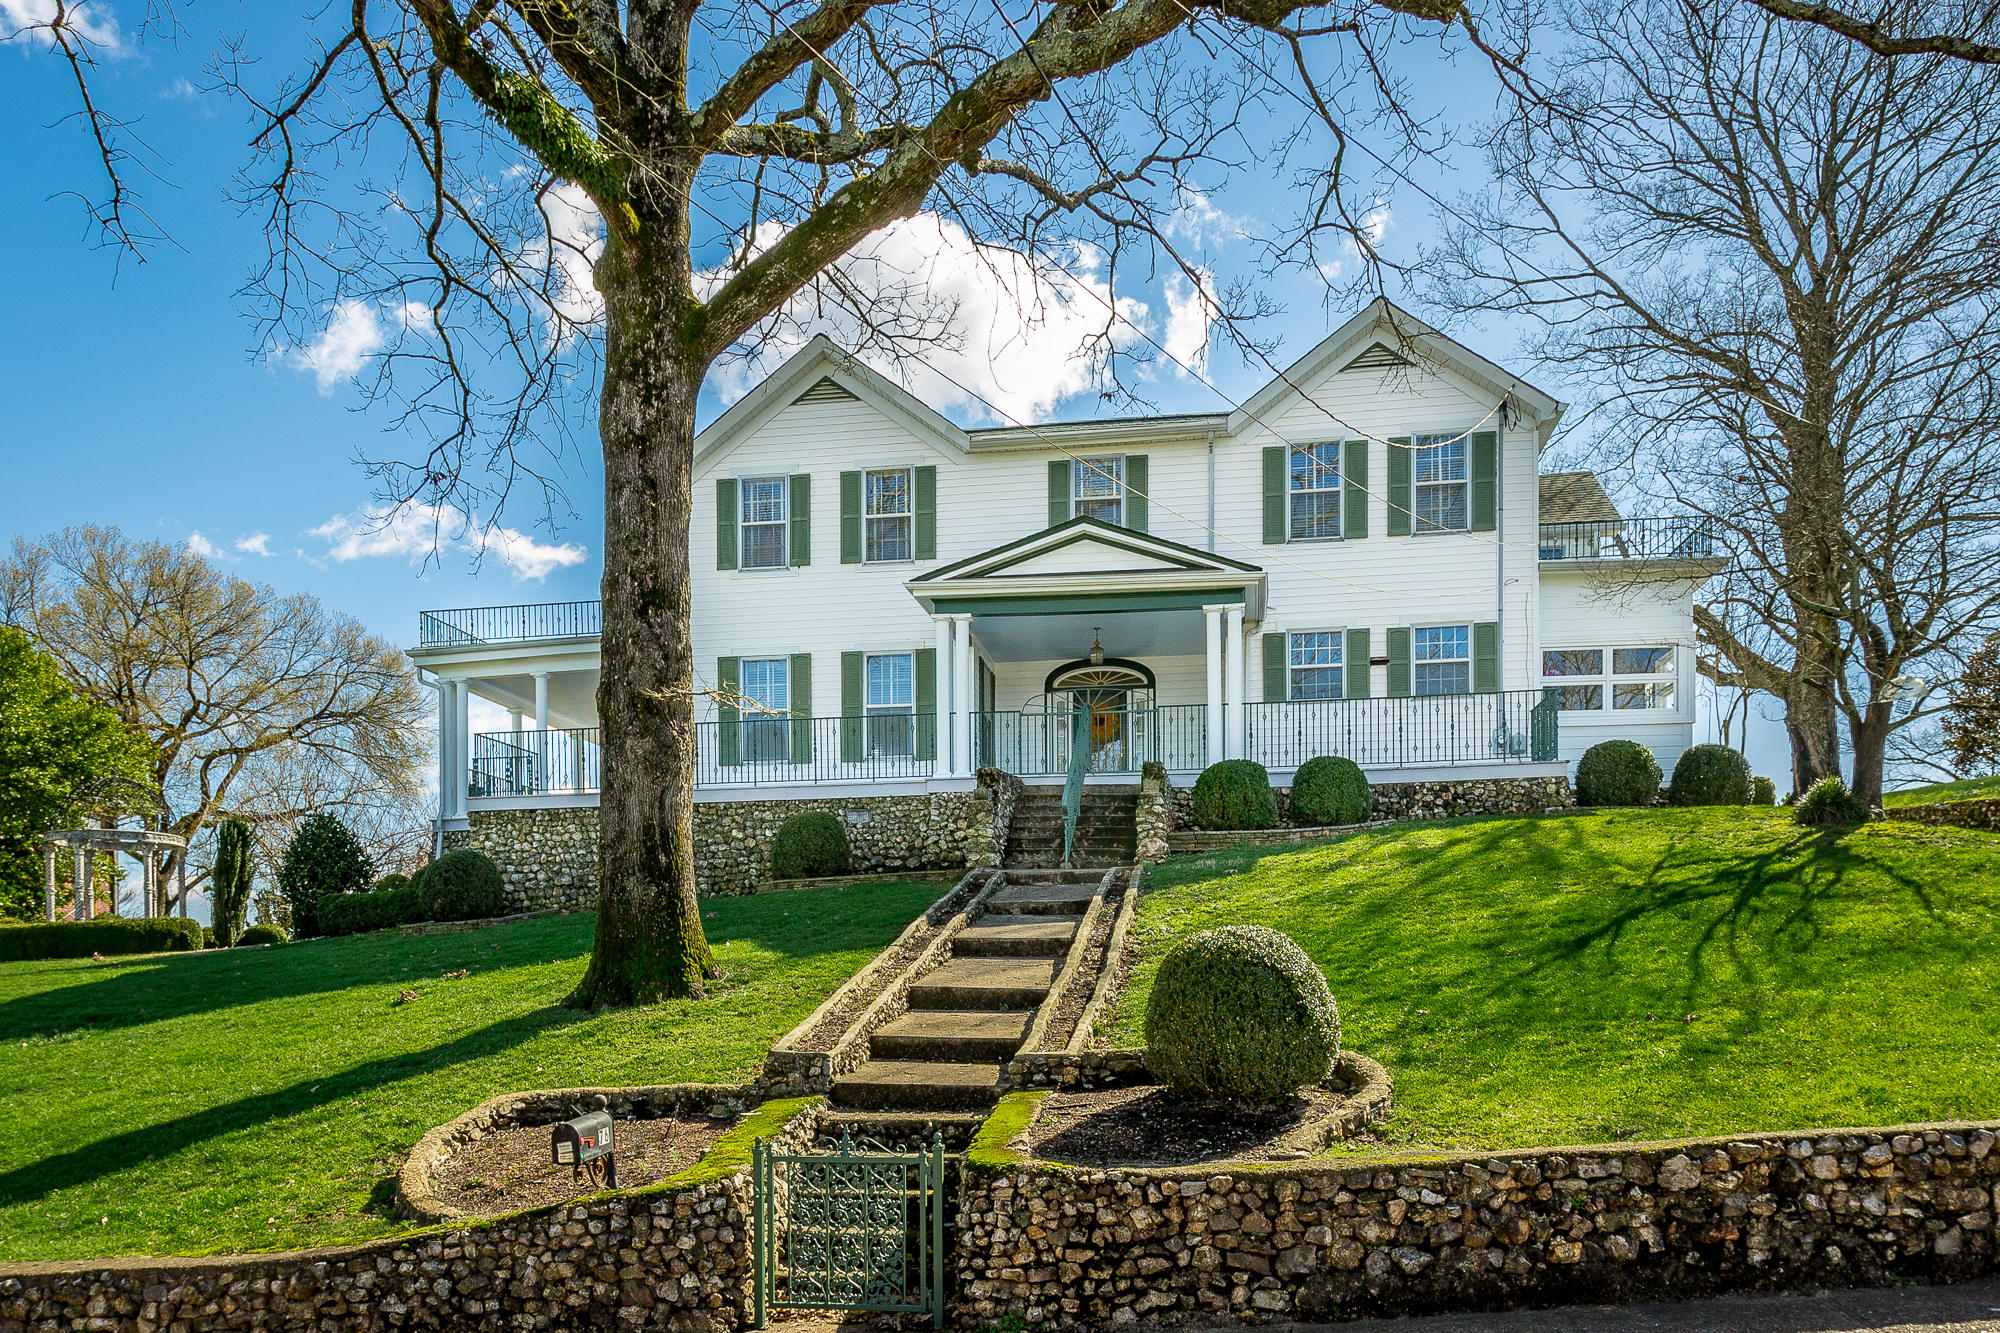 76 N Crest  Rd, Chattanooga, Tennessee